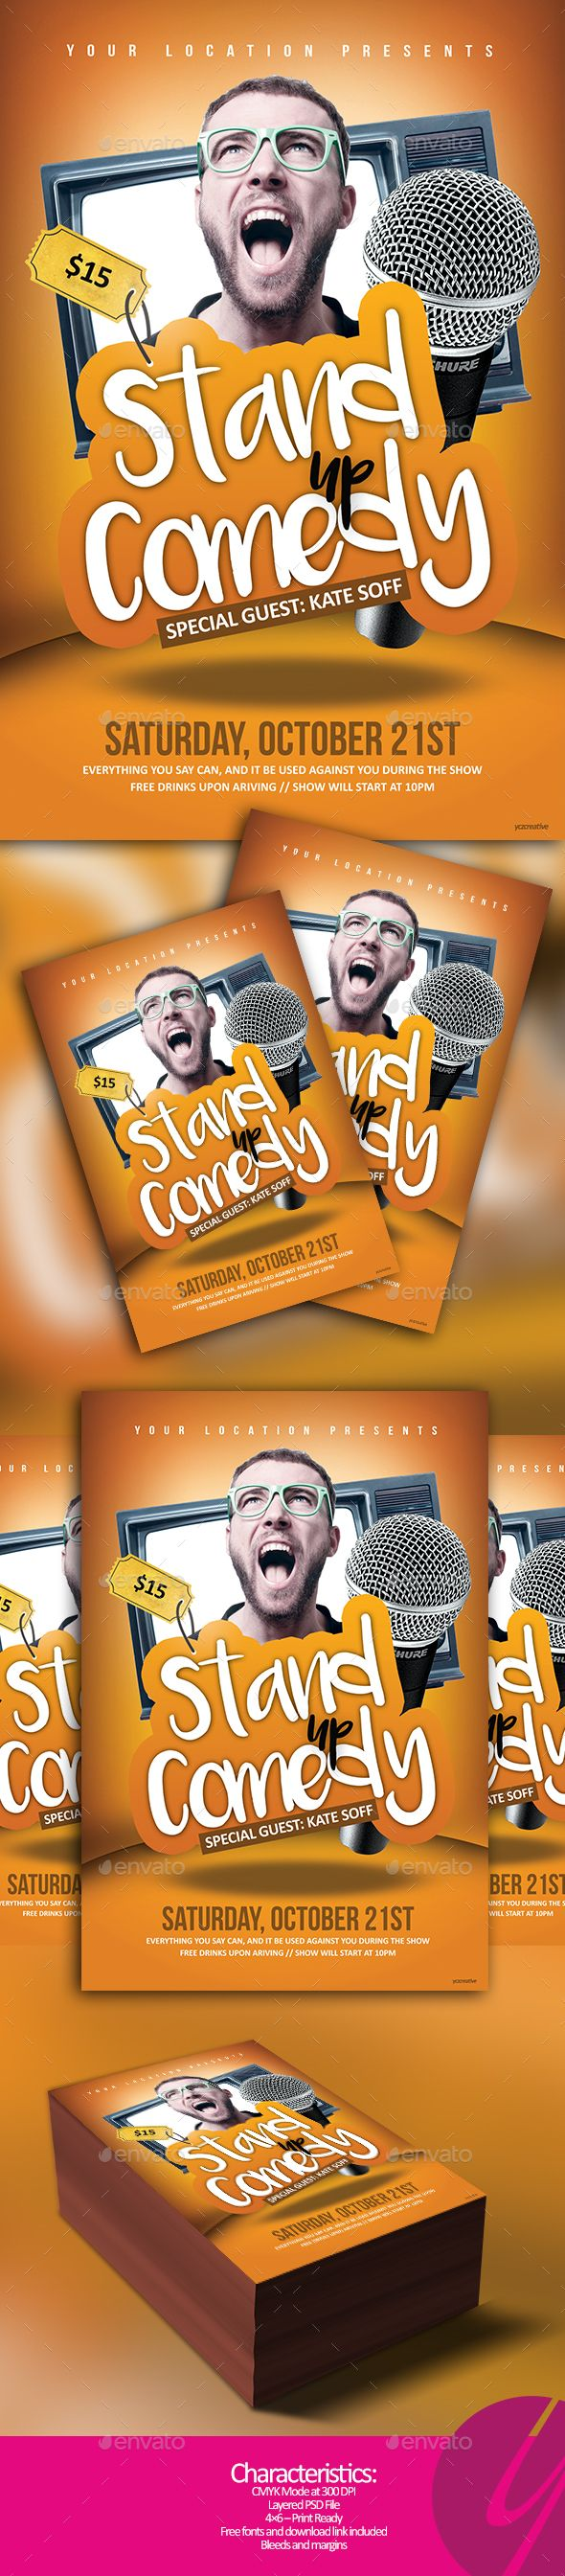 Stand Up Comedy Night — Photoshop PSD #drink #microphone • Available here → https://graphicriver.net/item/stand-up-comedy-night/17729908?ref=pxcr